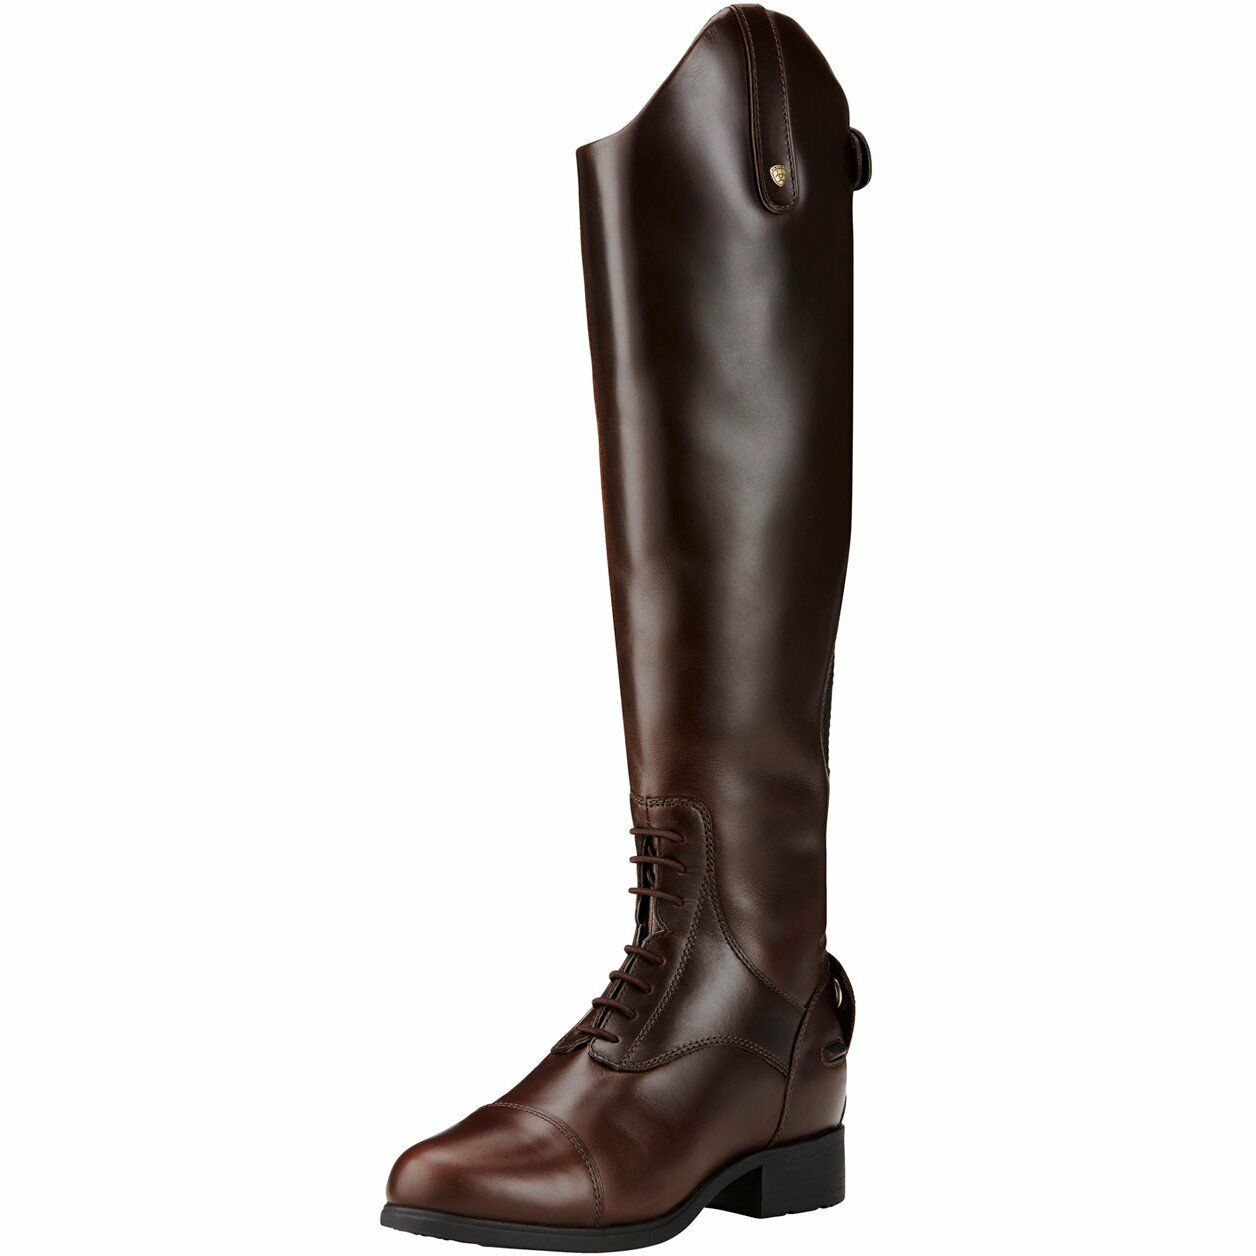 Ariat Women's Bromont Pro Tall H20 Insulated Womens Boots Long Riding - Waxed